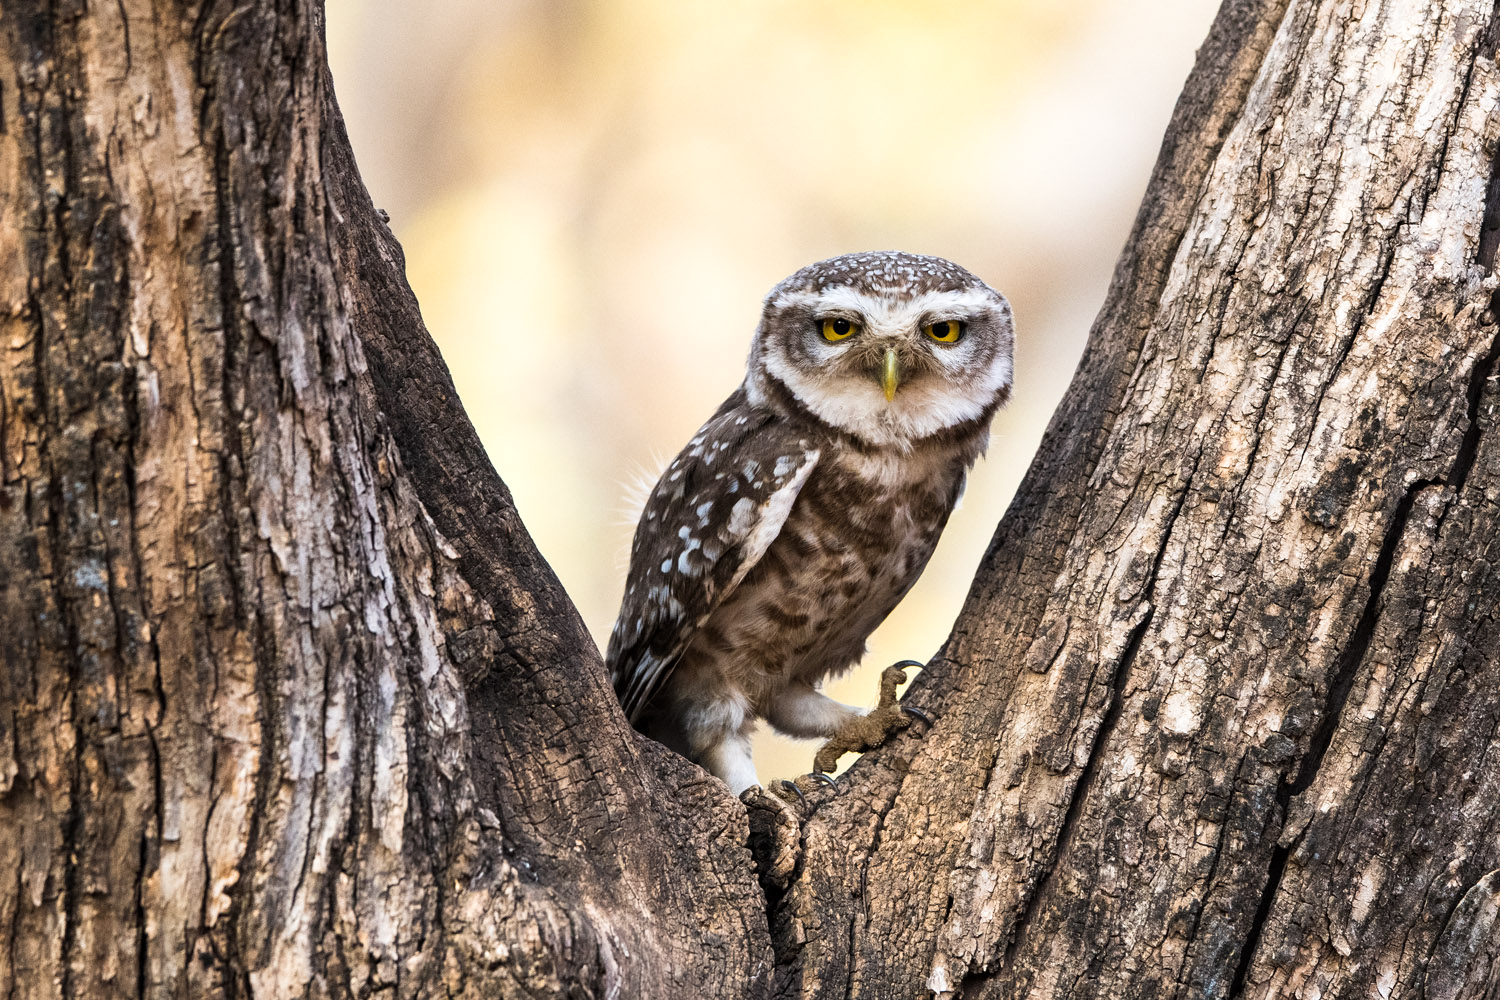 Spotted owlet in dhok tree, Ranthambhore National Park, Rajasthan, India